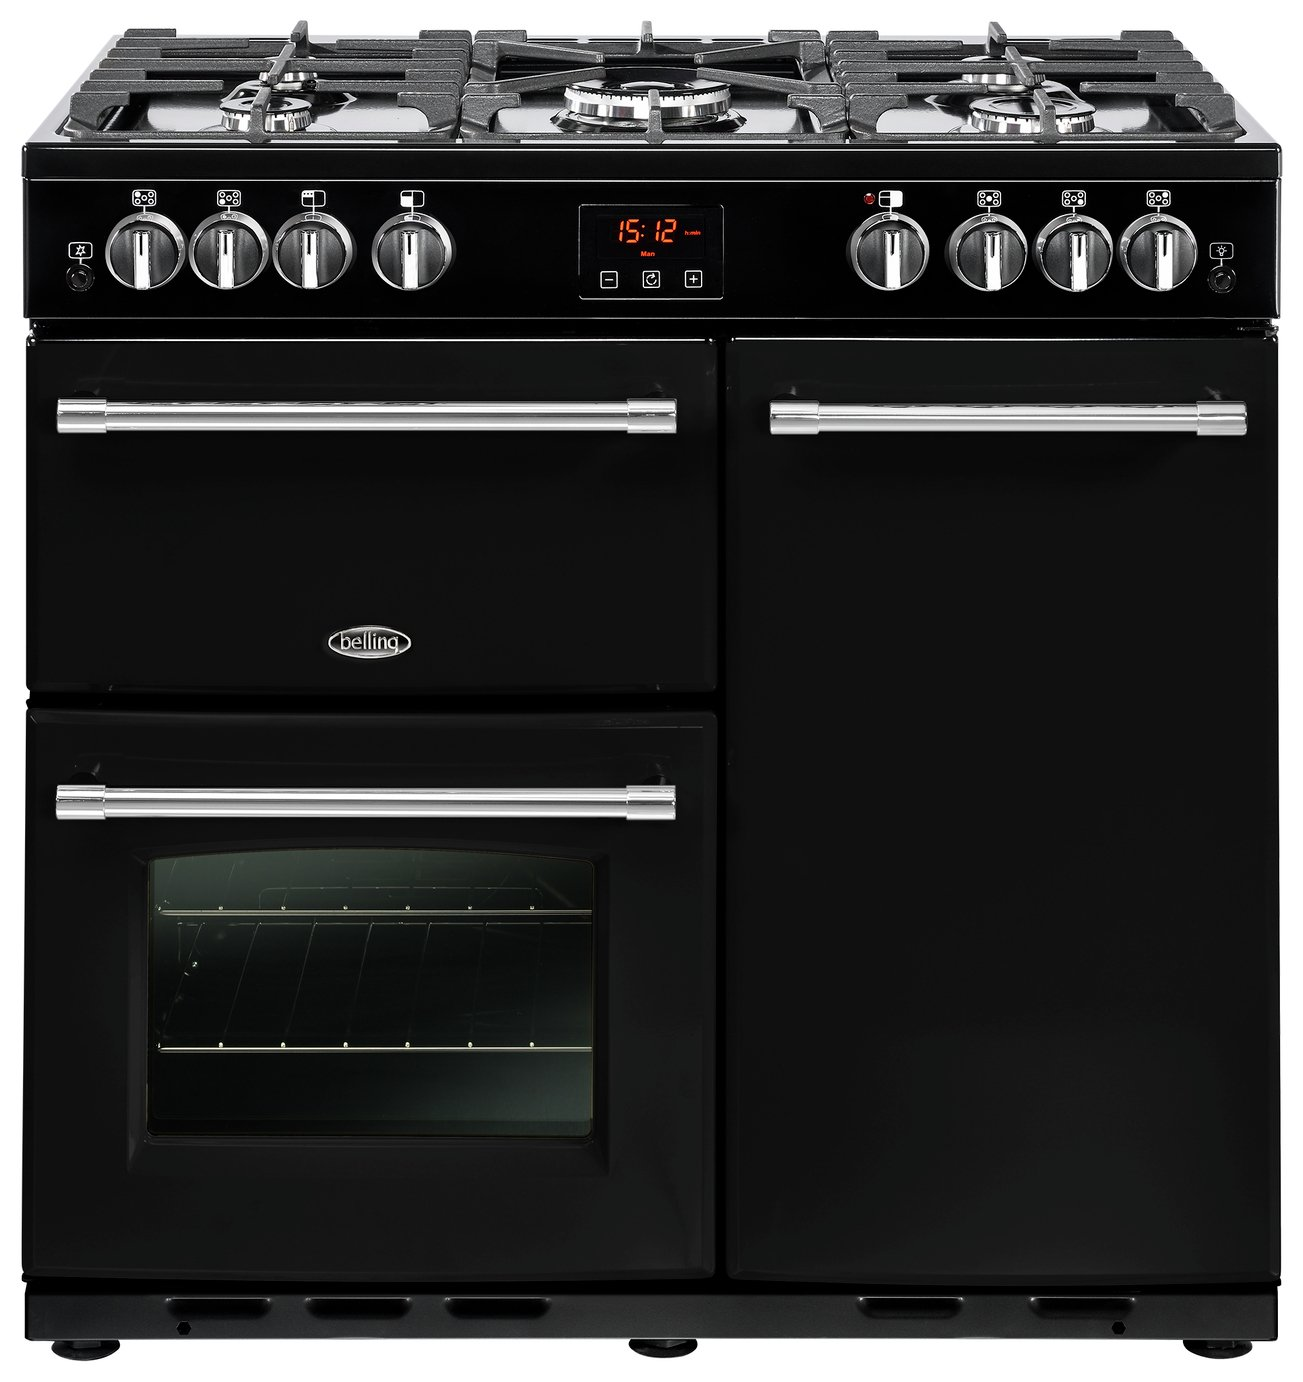 Belling Farmhouse 90G Dual Fuel Range Cooker - Black